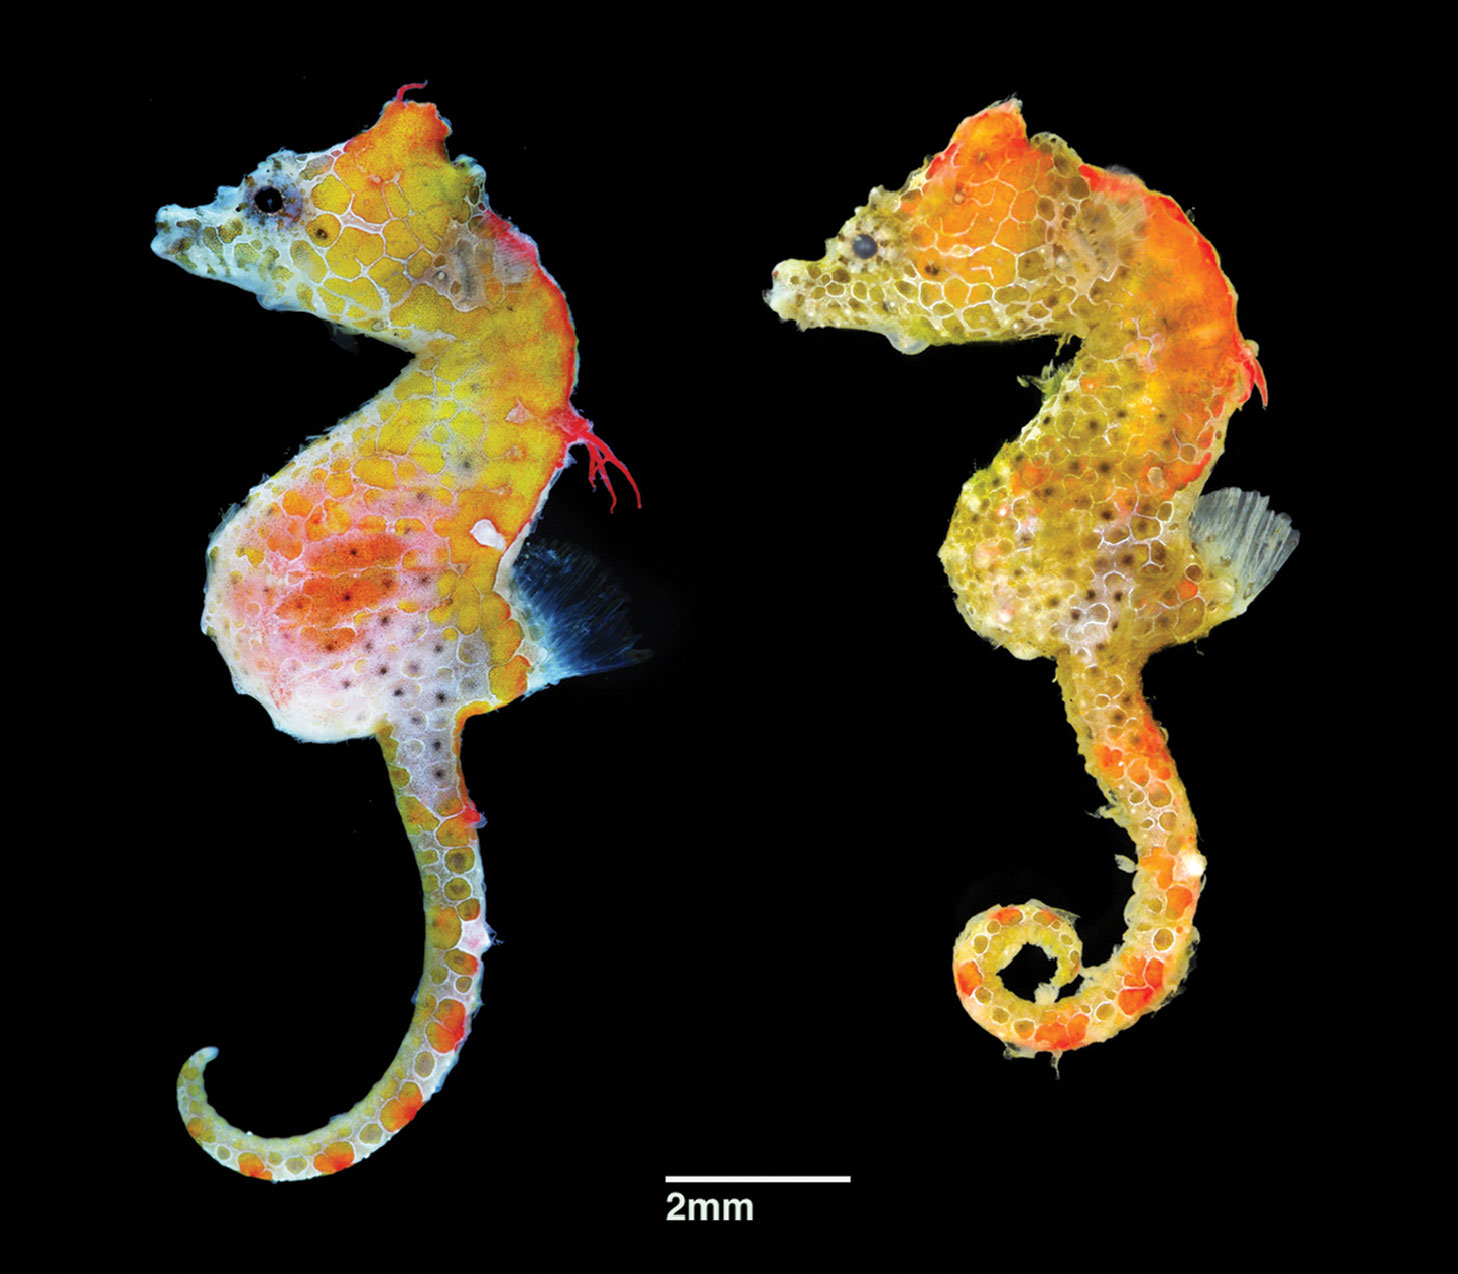 Hippocampus japapigu, paratypes. A 15.59 mm SL Male at left, and 14.54 mm SL female at right. Collected at Hachijo-jima Island, Izu Islands, Japan. Image credit: Hiroyuki Motomura, CC BY 4.0